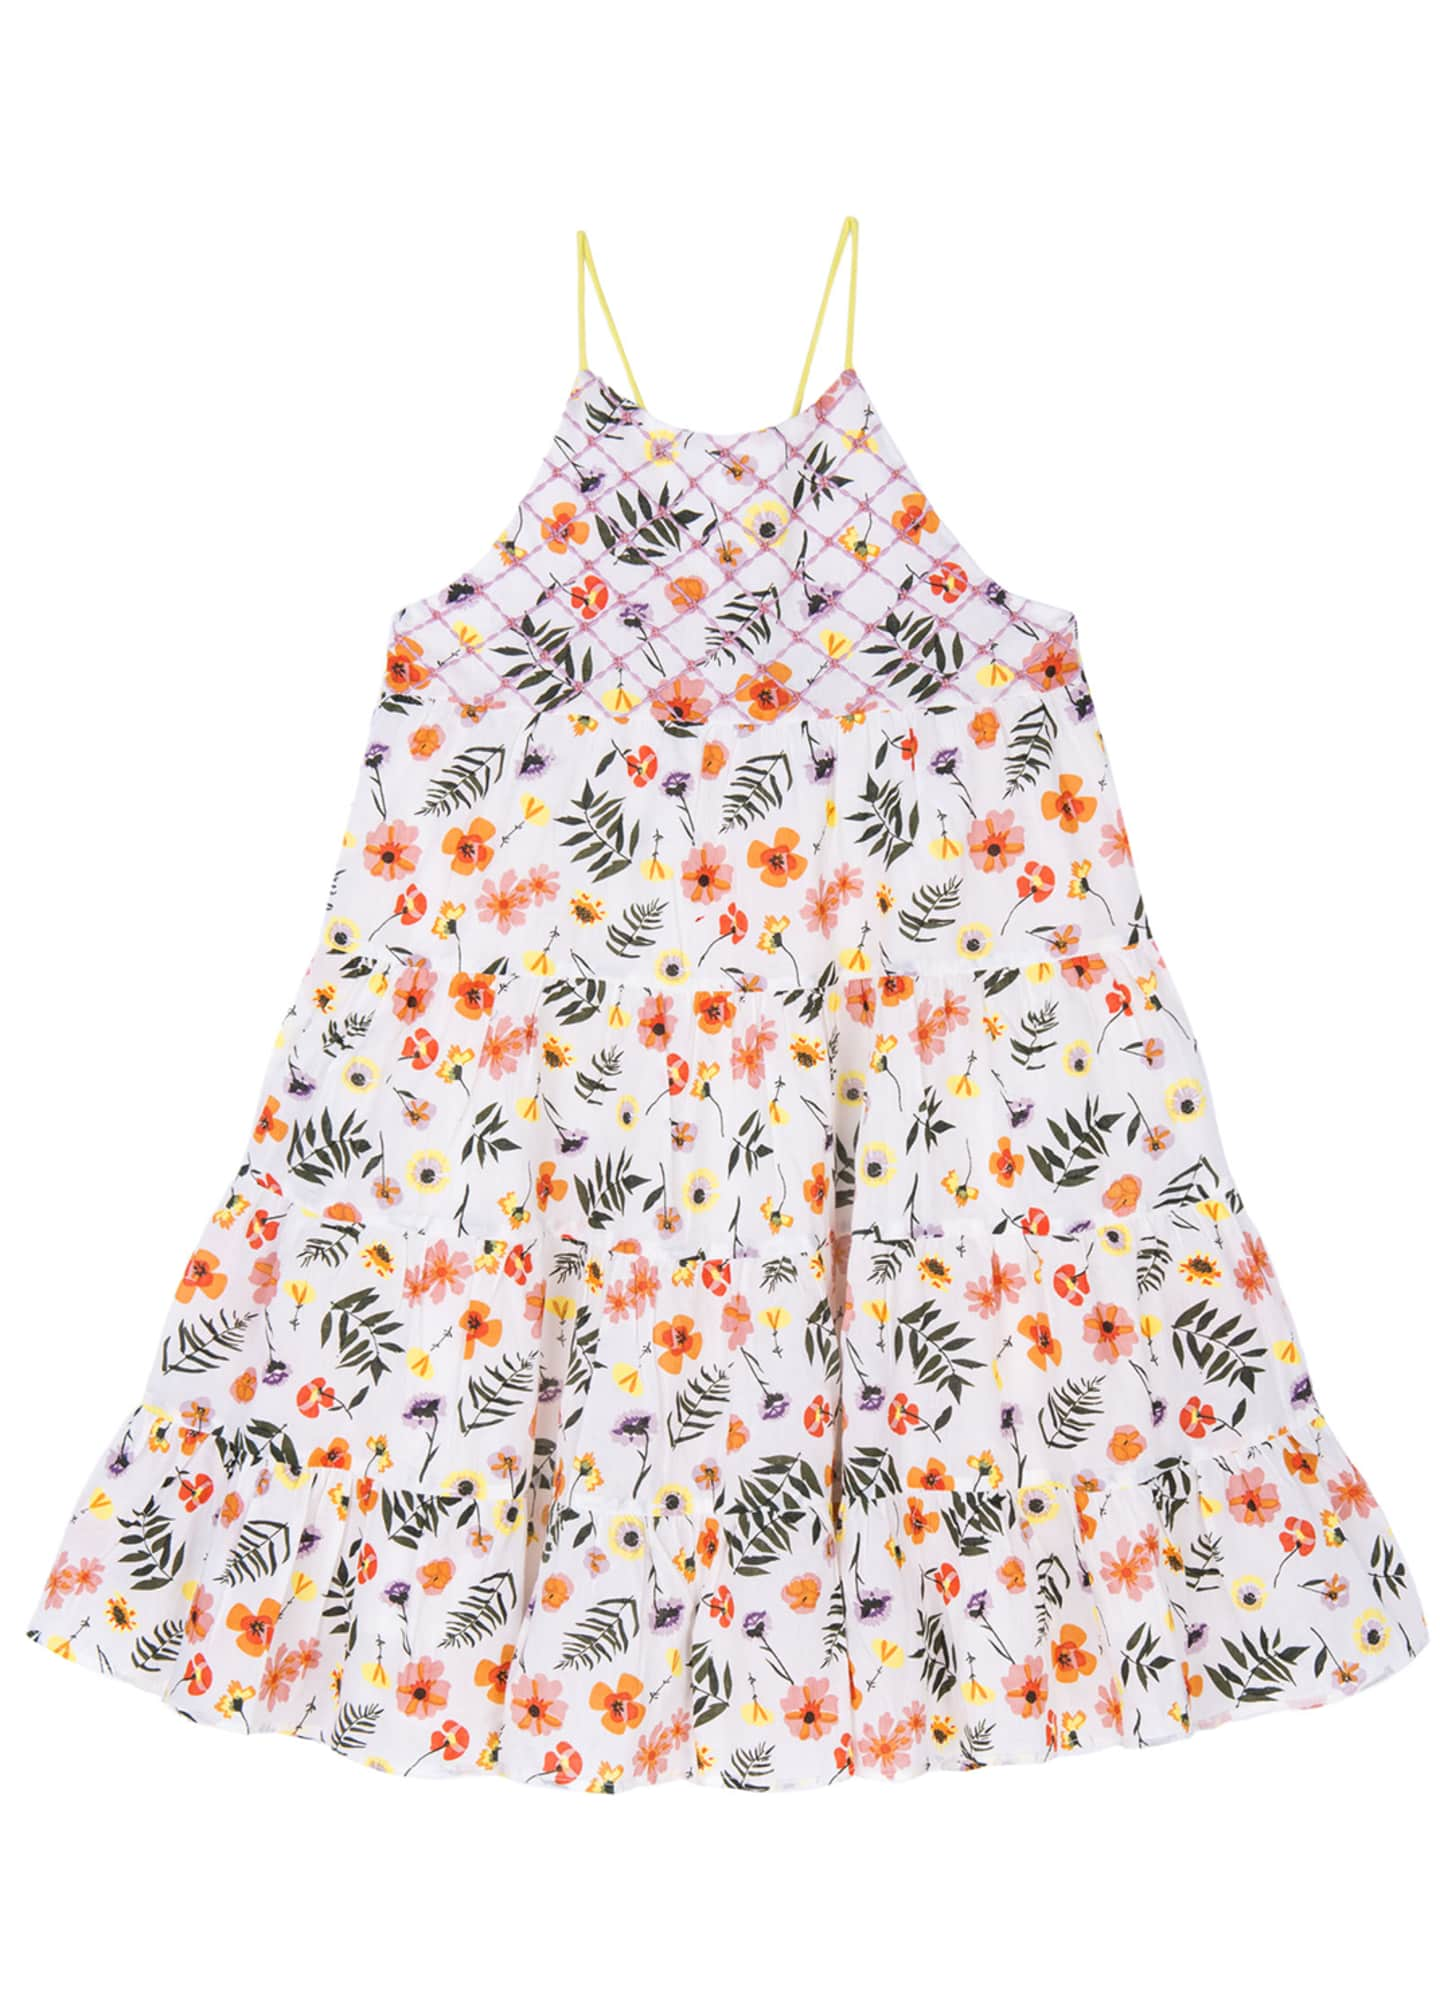 Lara Floral Sun Dress, Size 4-6